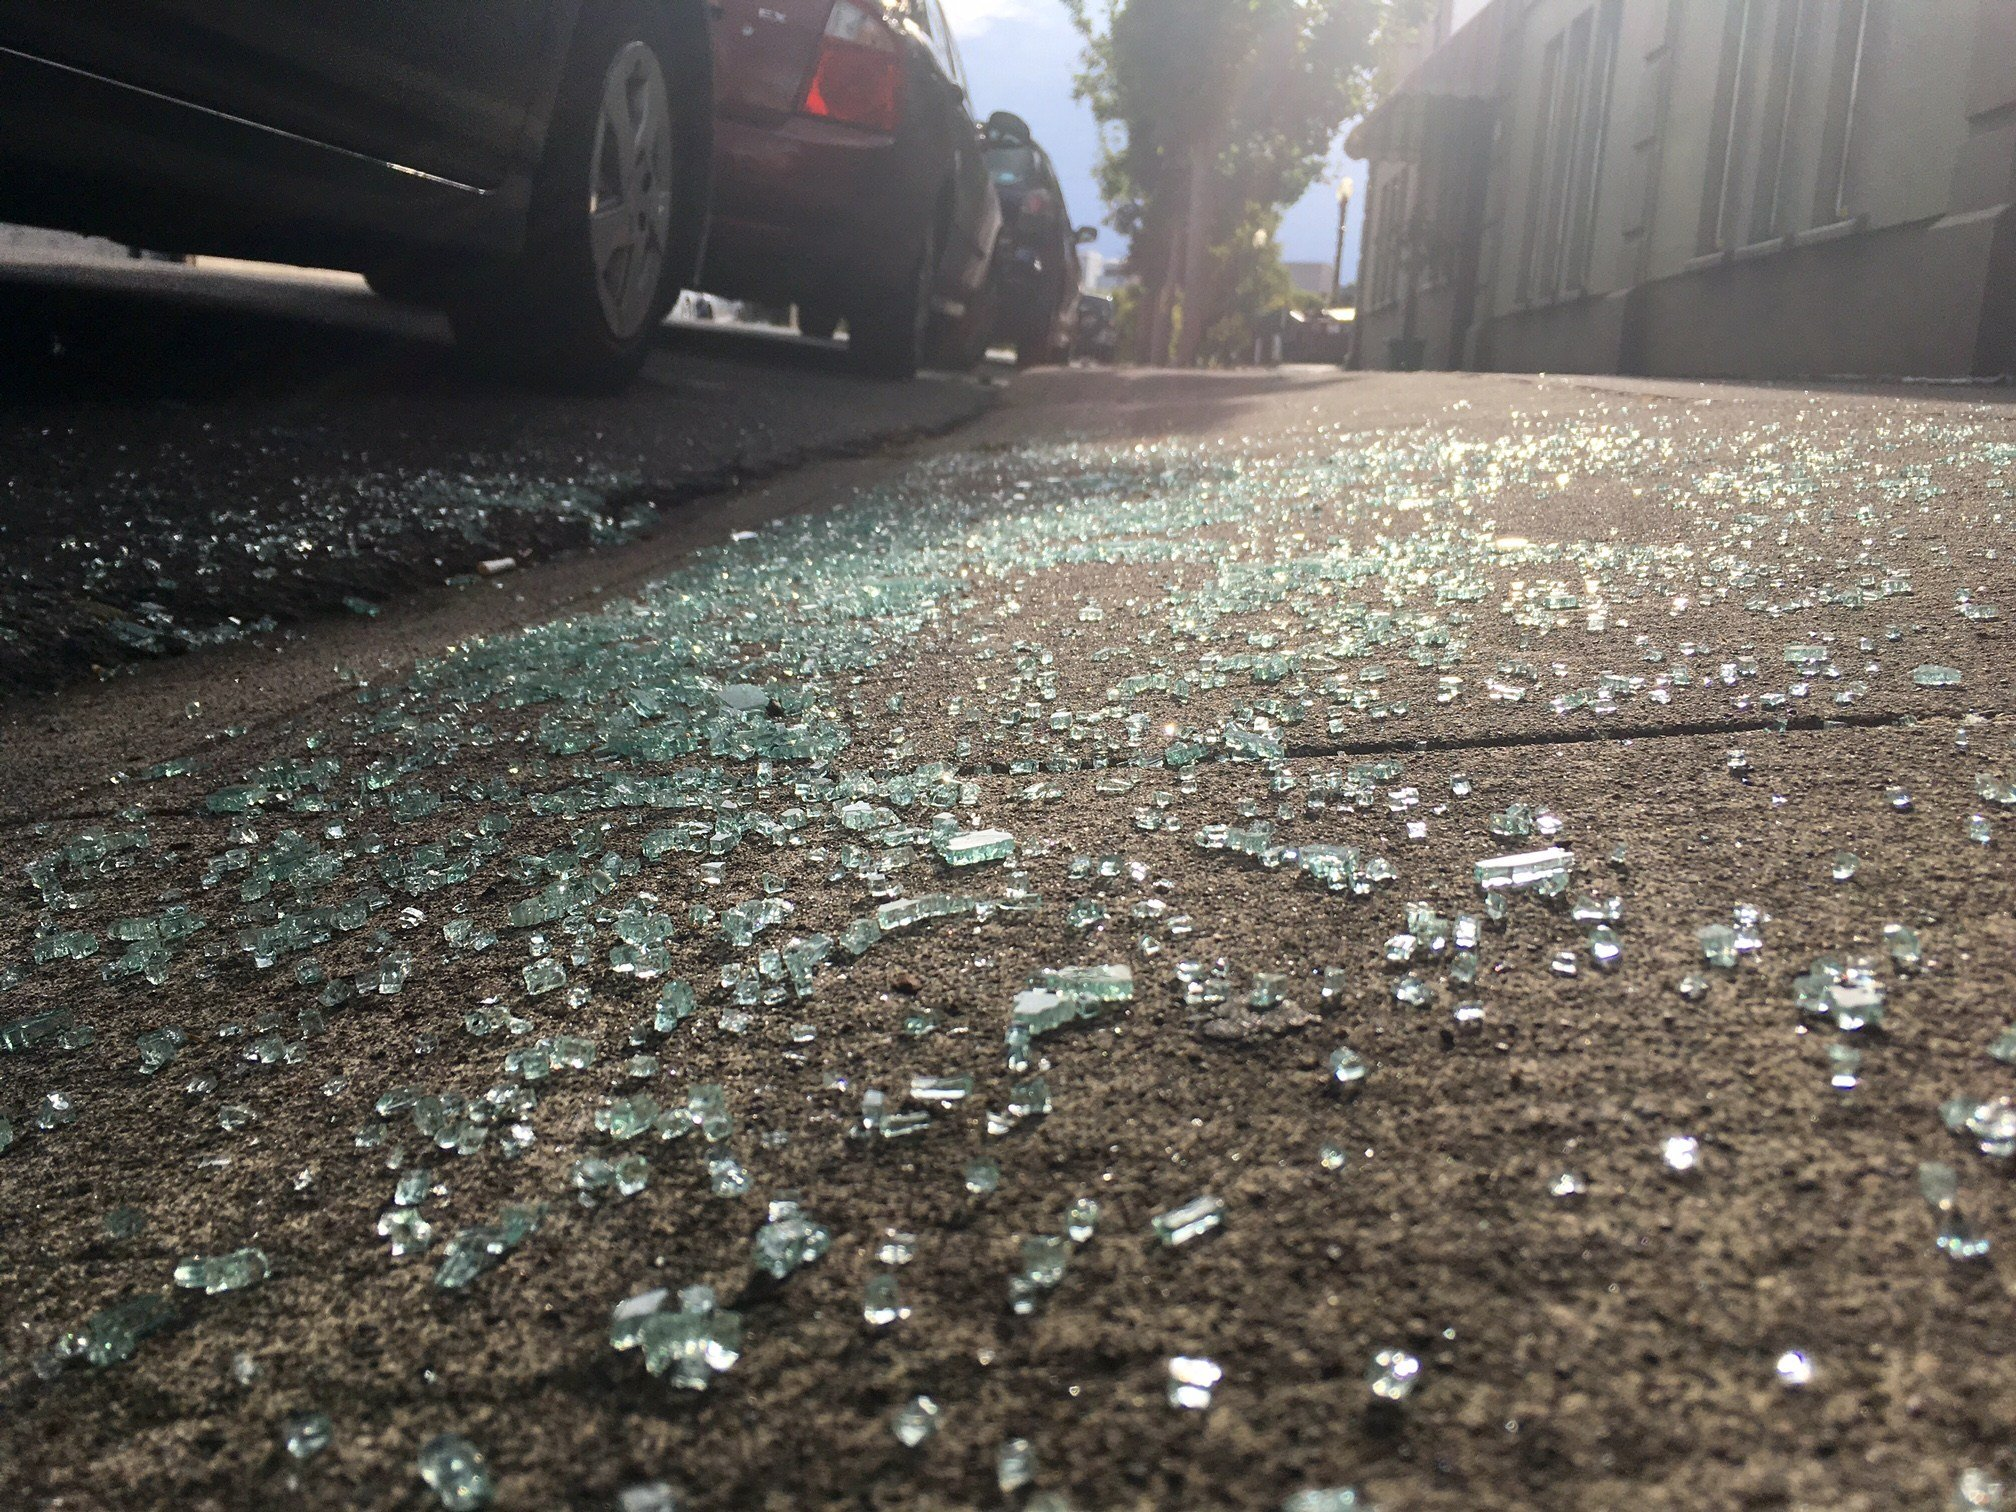 Shattered glass on the ground from a car break-in at SE 6th & Yamhill. (KPTV)